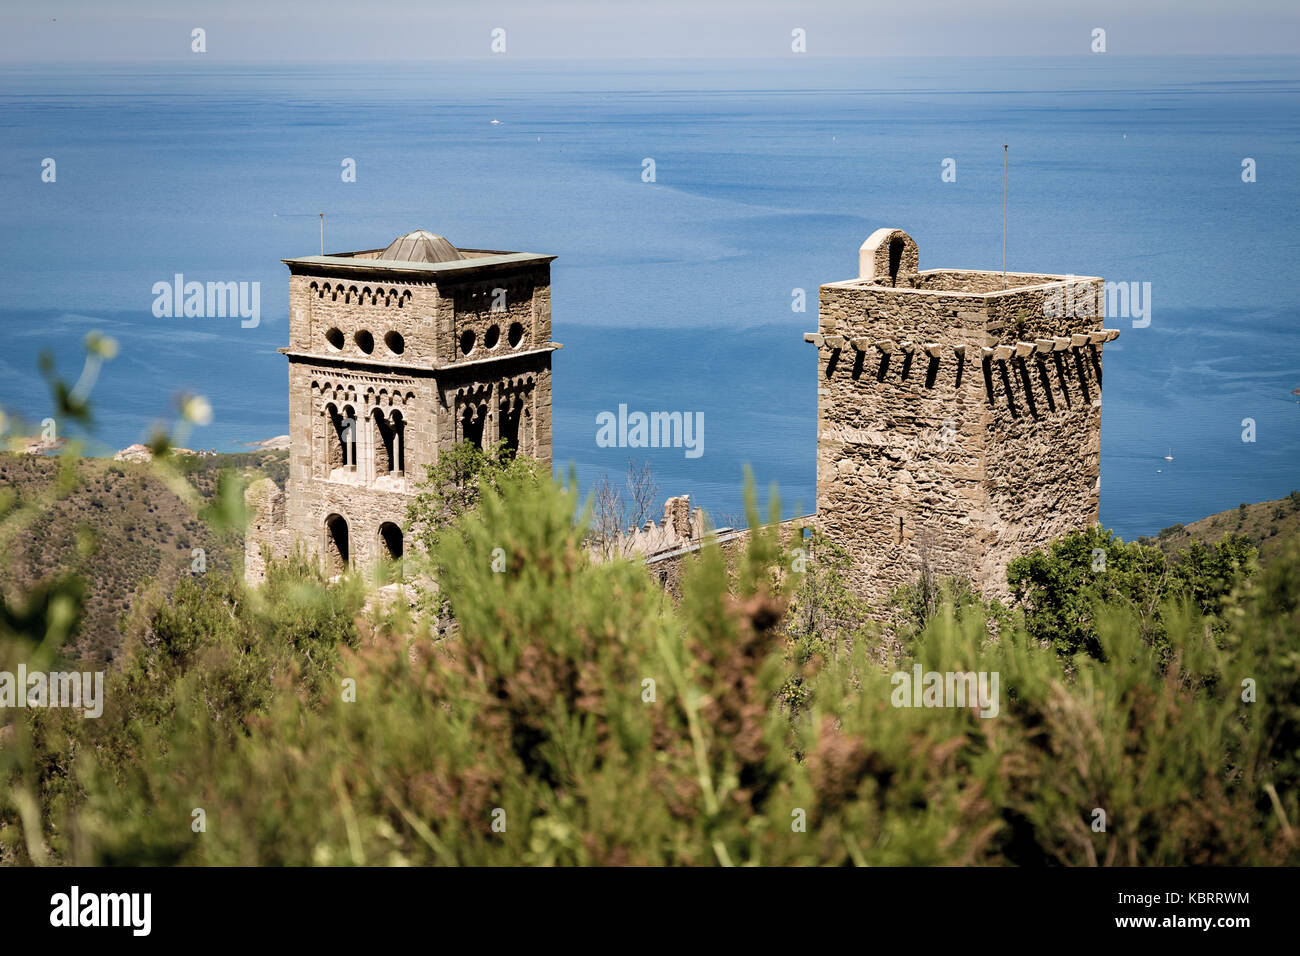 Bushes on the foreground and monastery of Sant Pere de Rodes in back Stock Photo